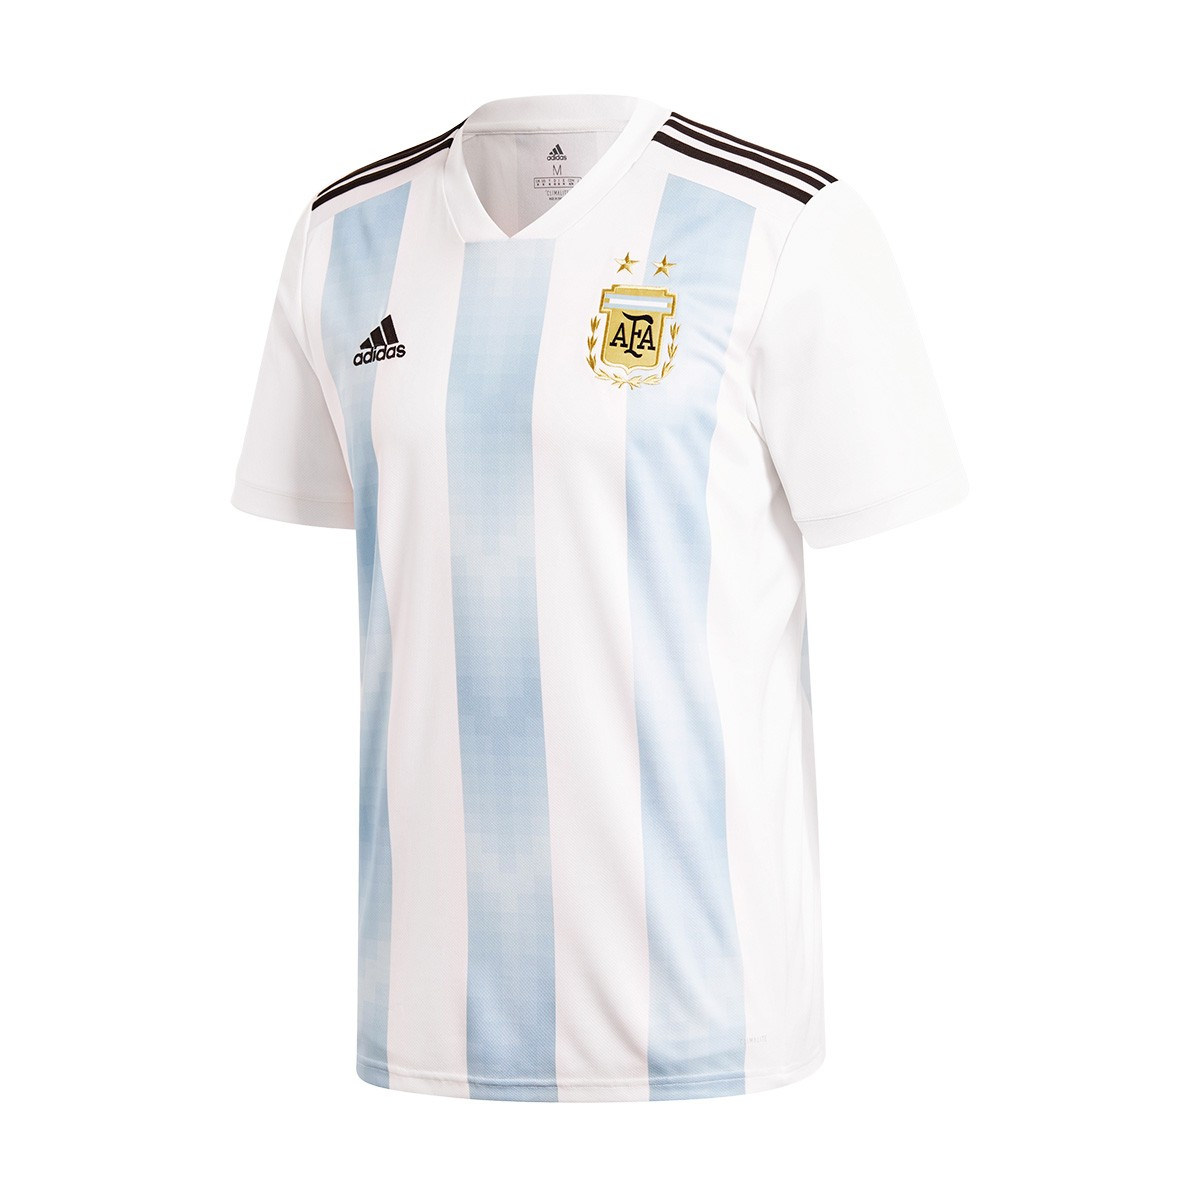 4cb51ac2ee3f Jersey adidas Argentina 2017-2018 Home White-Claer blue-Black ...